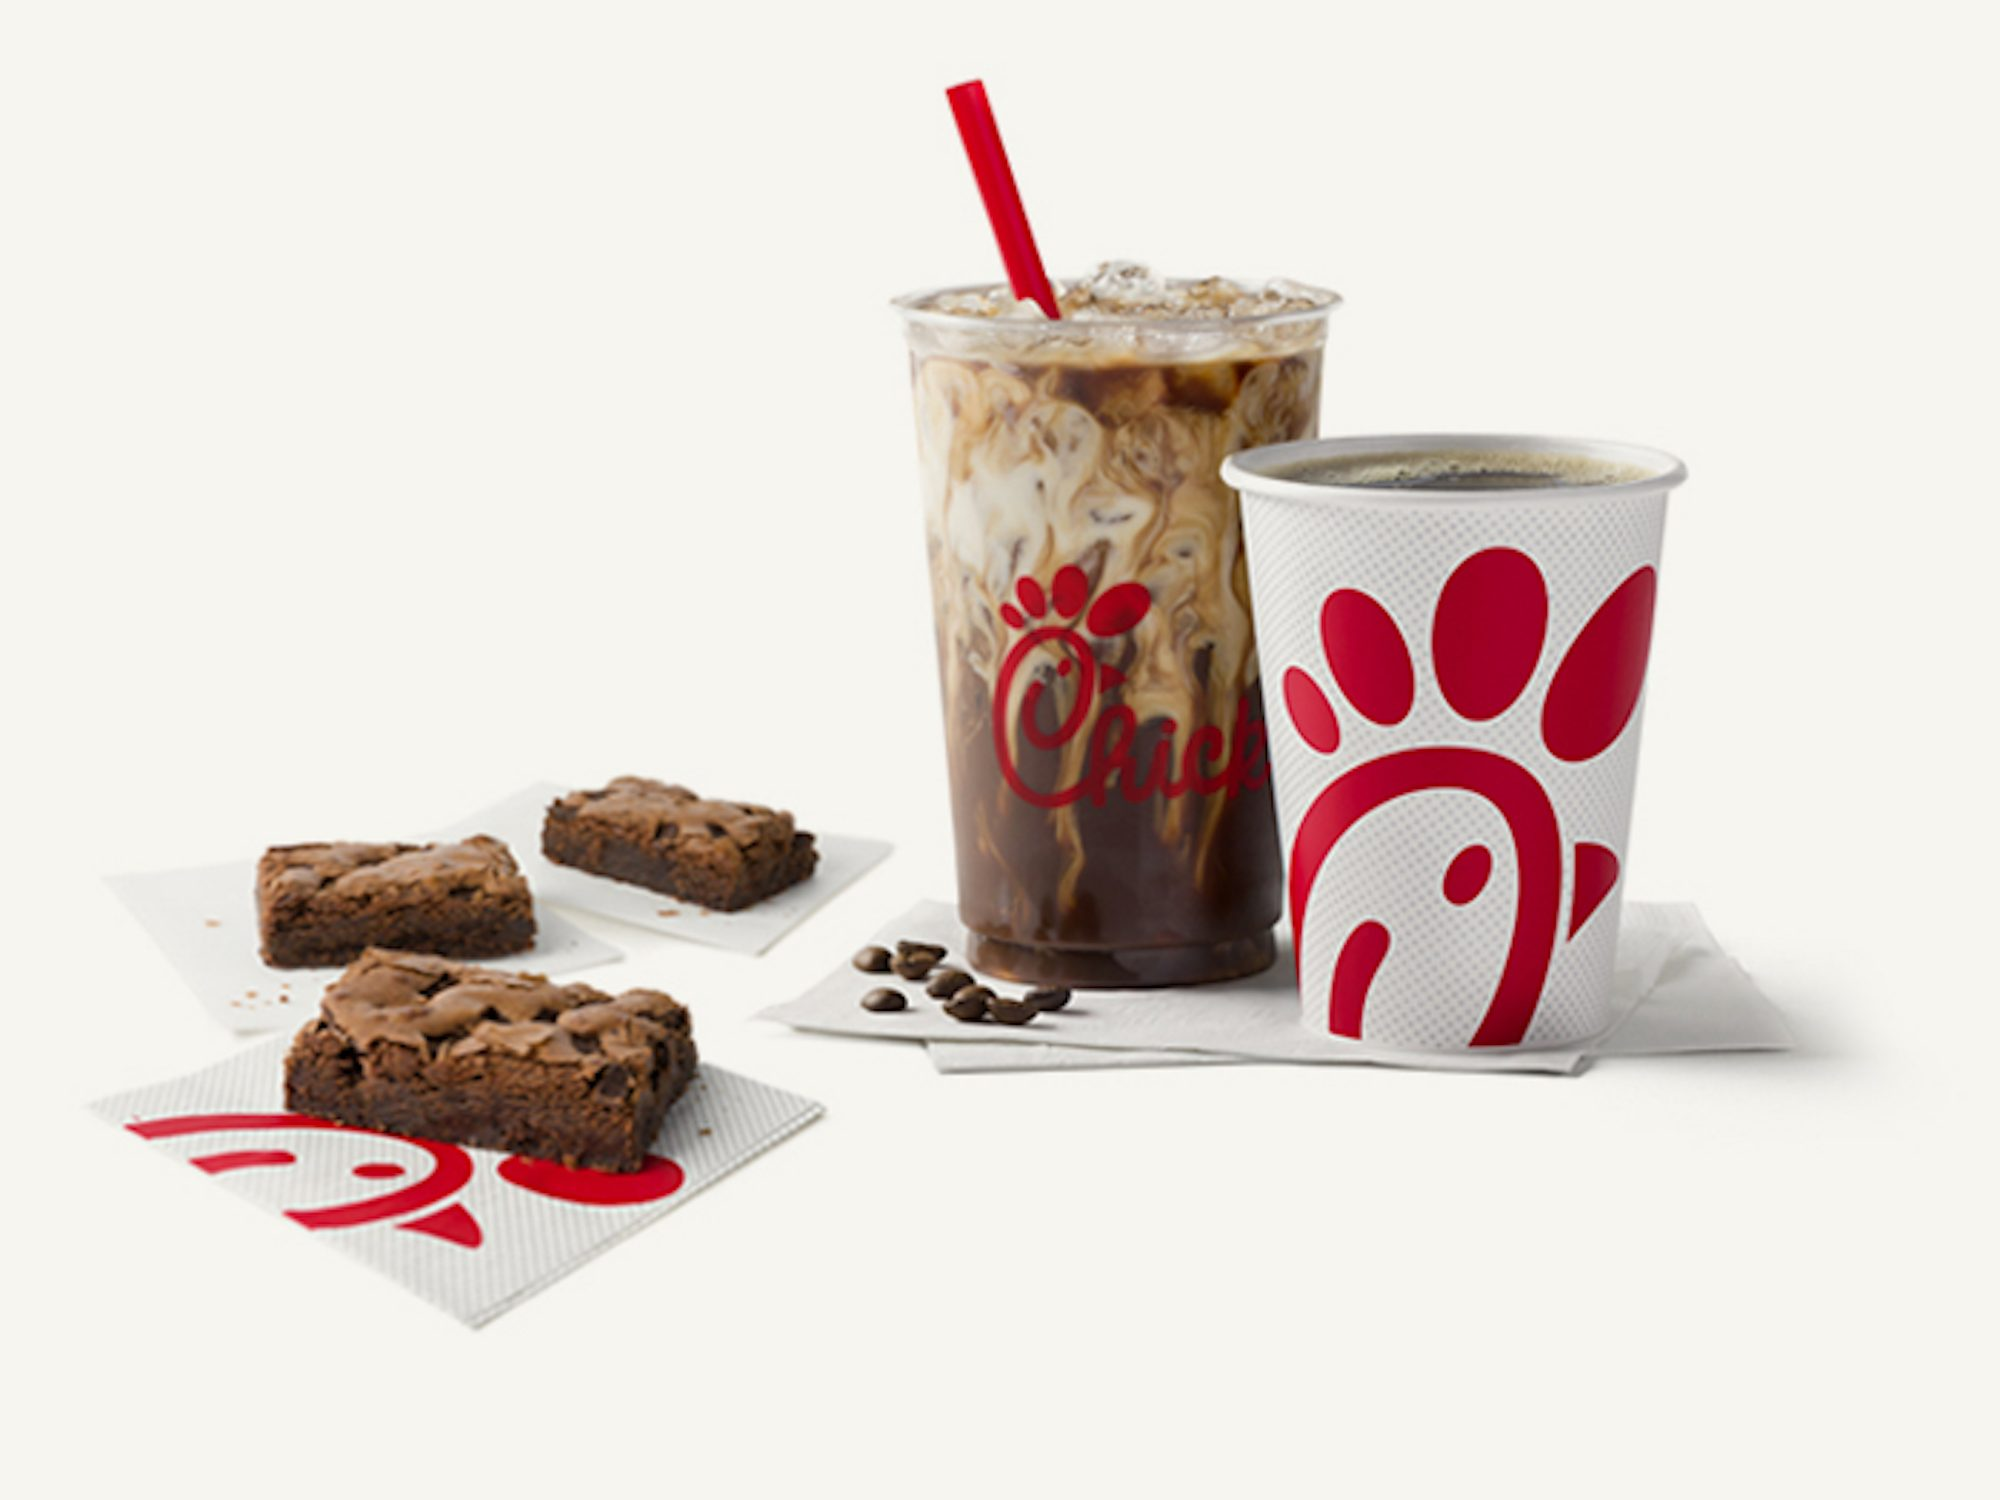 CFA Chocolate Fudge Brownie and Coffee Drinks1.jpg